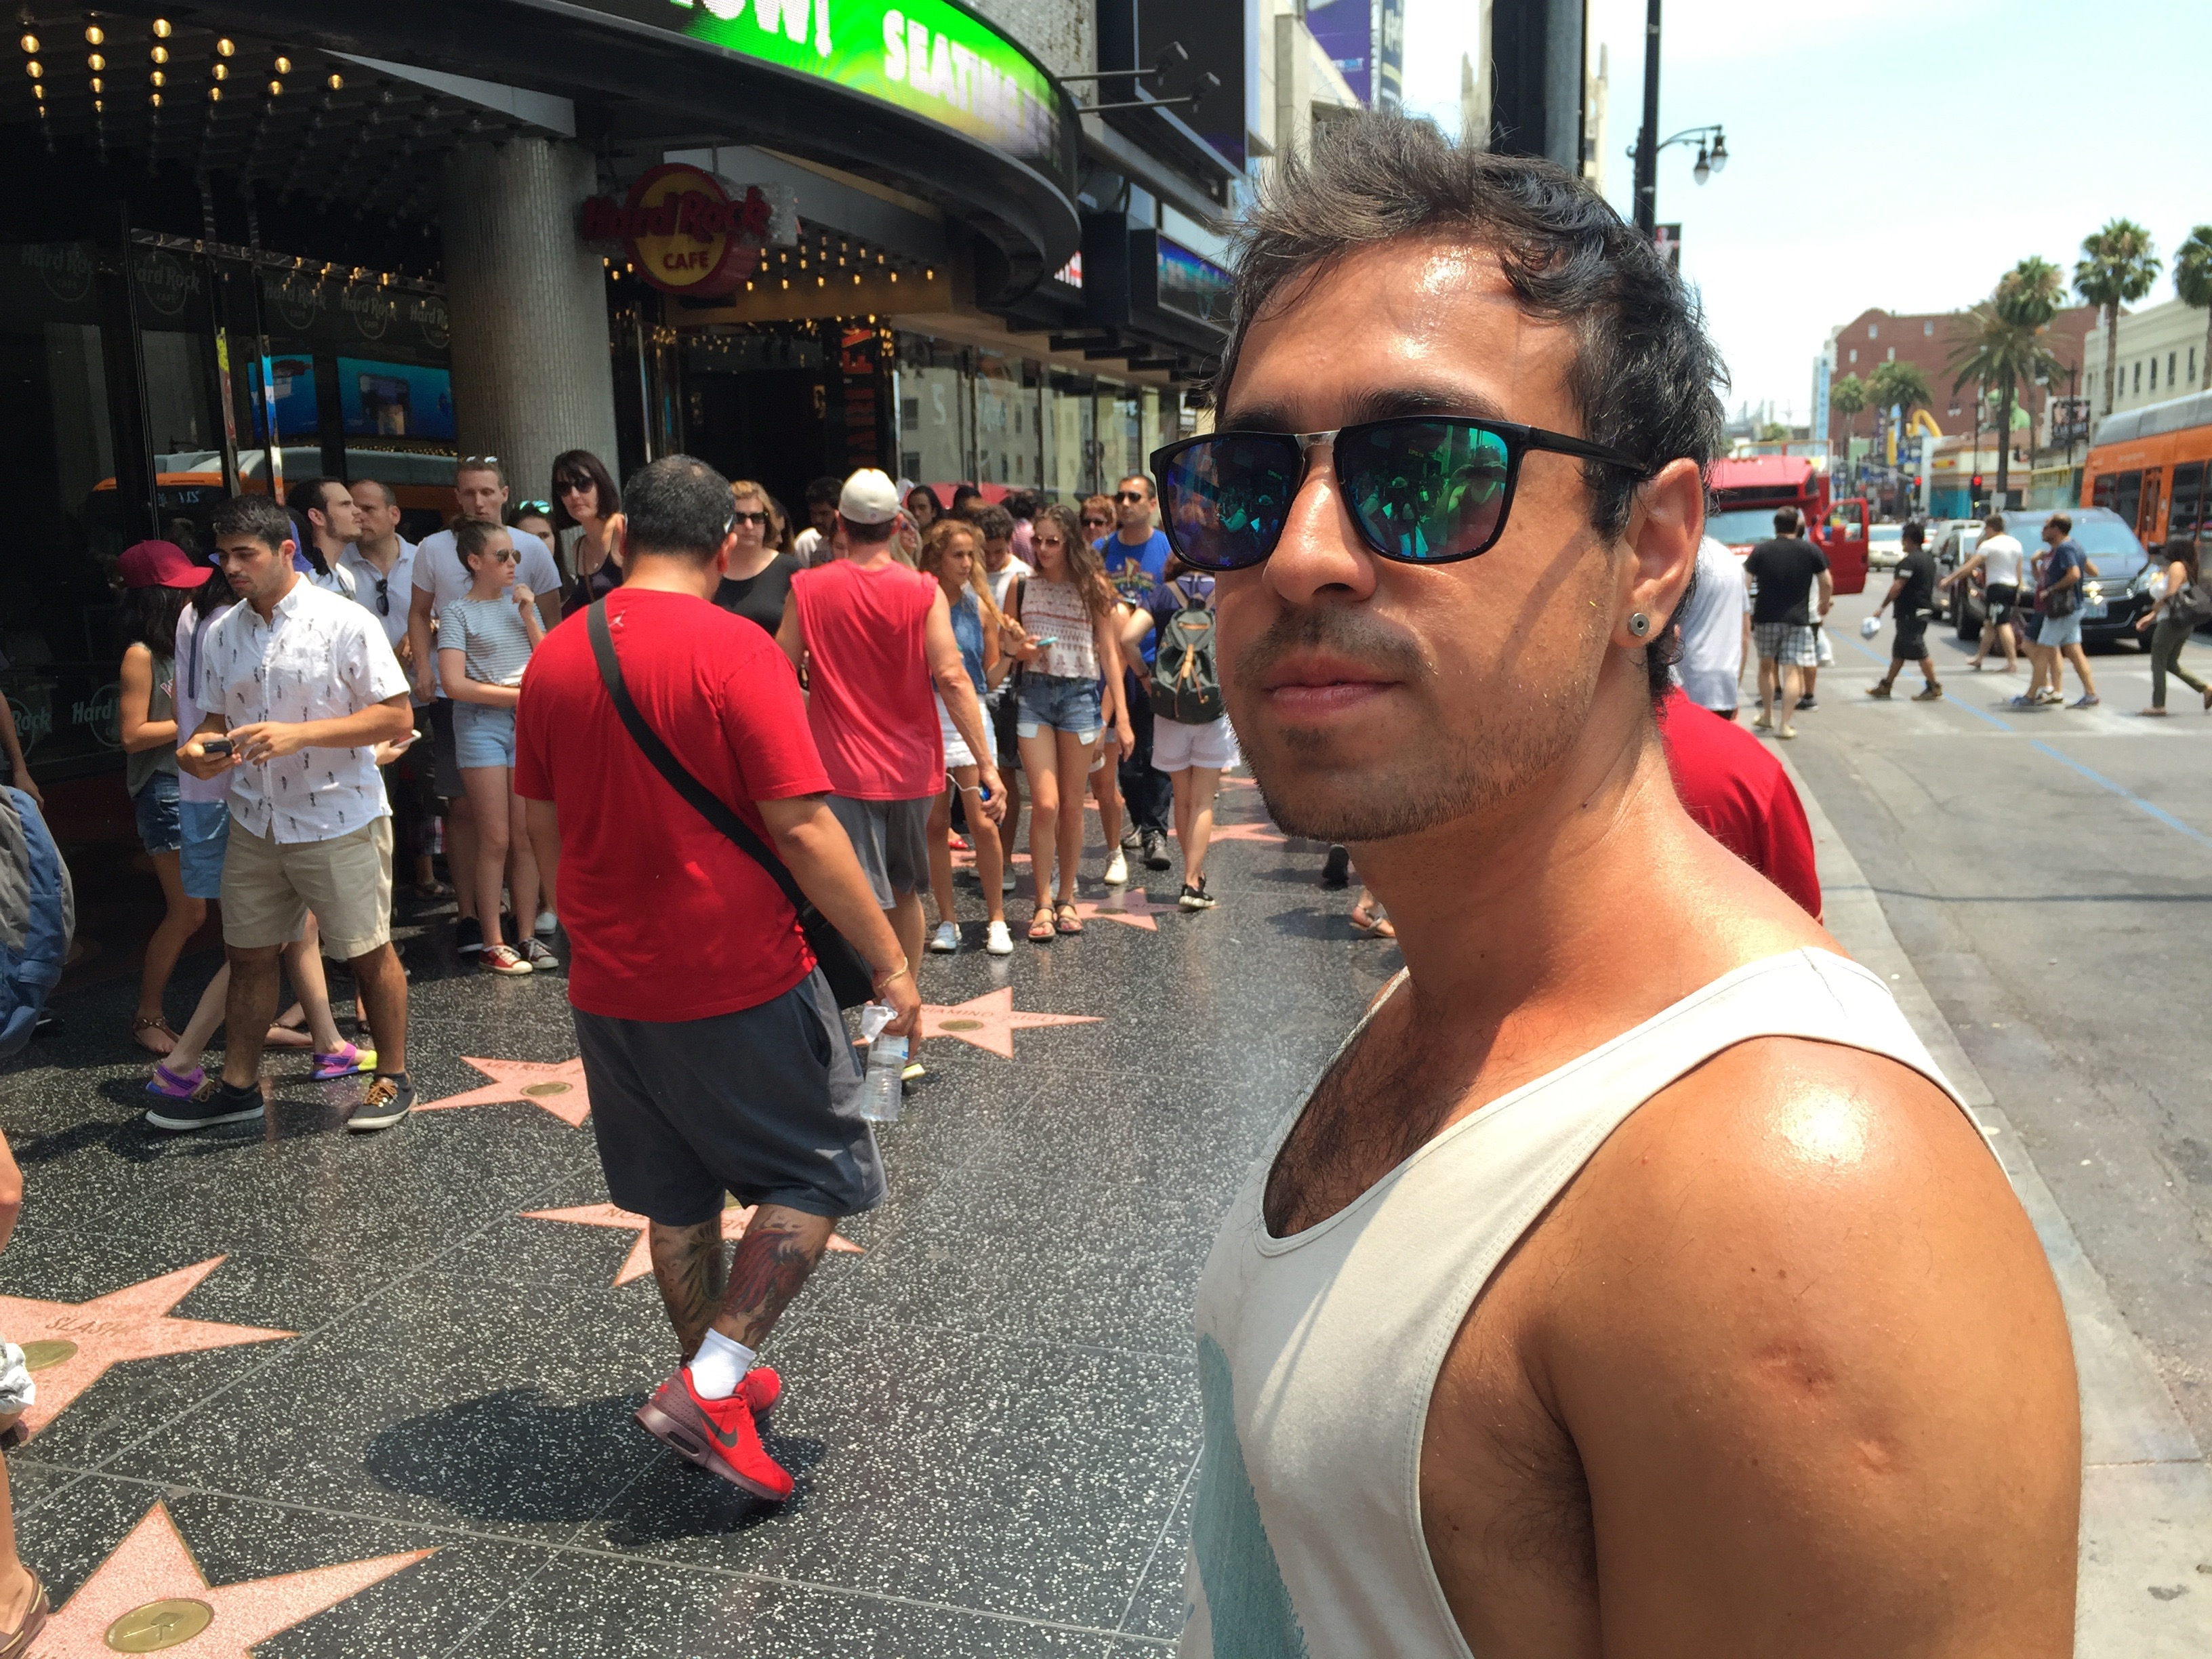 A Chilean walking in Hollywood.